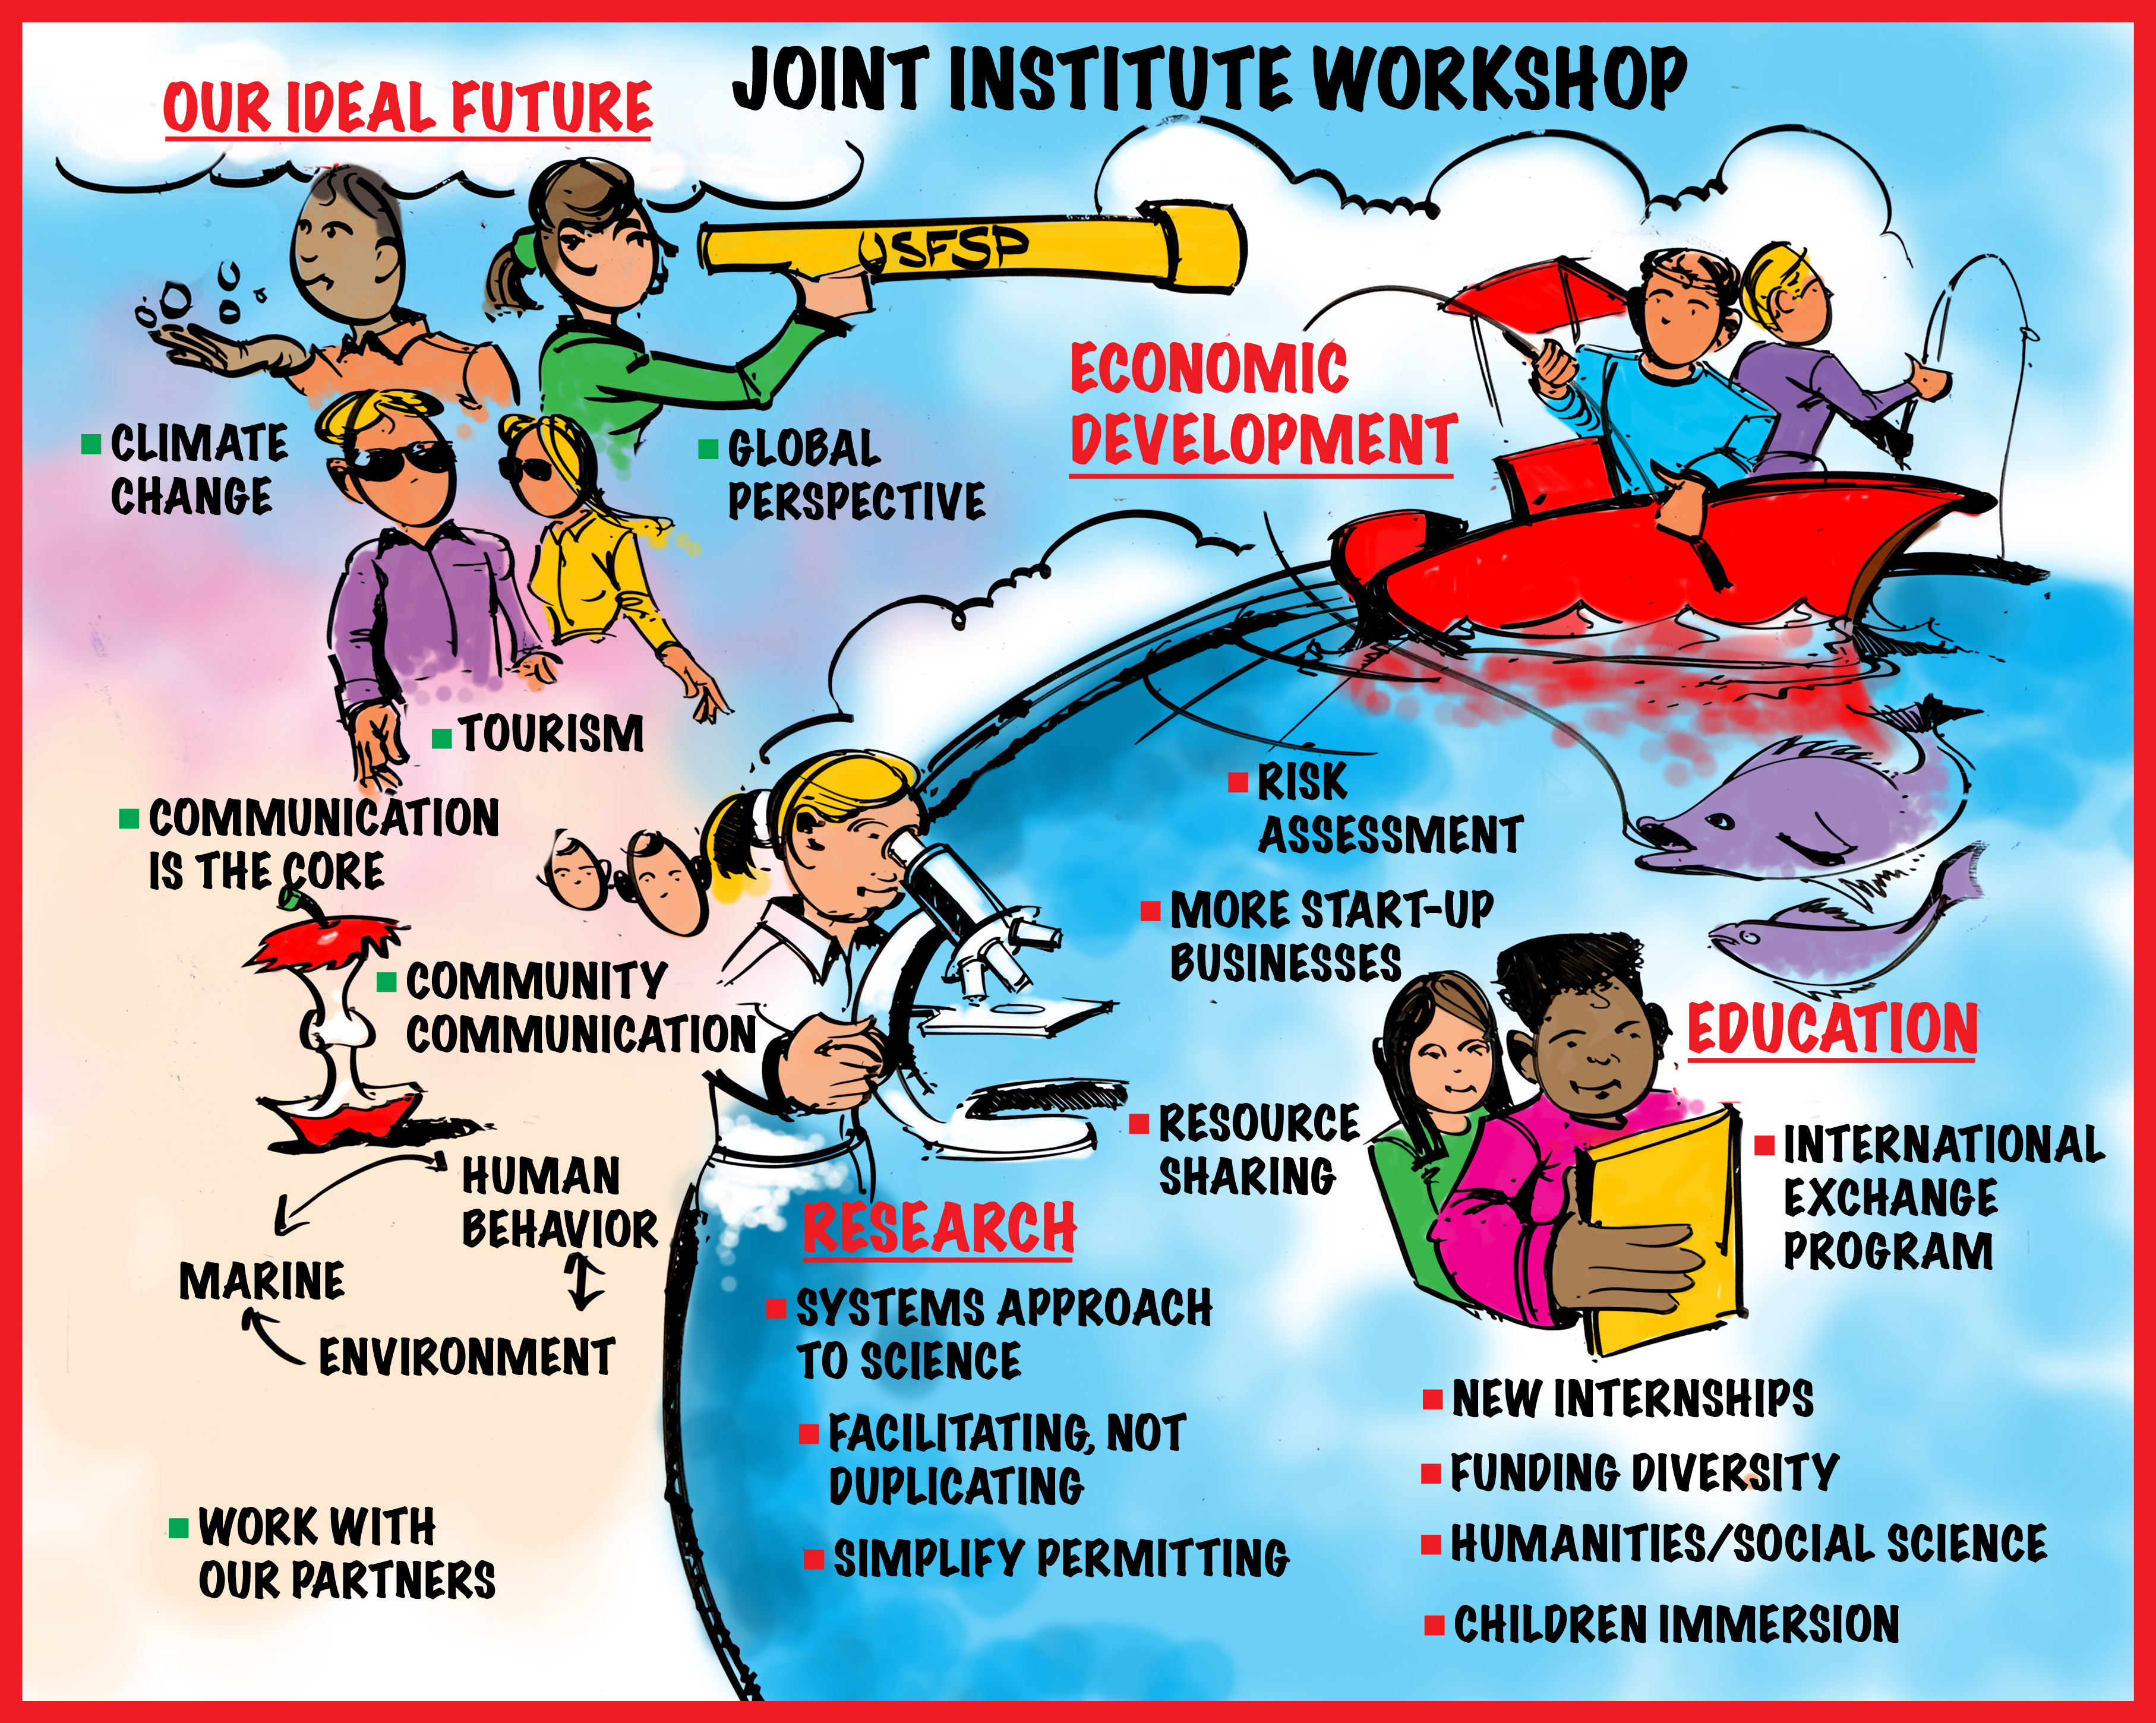 Joint Institute workshop about how to contribute to the future